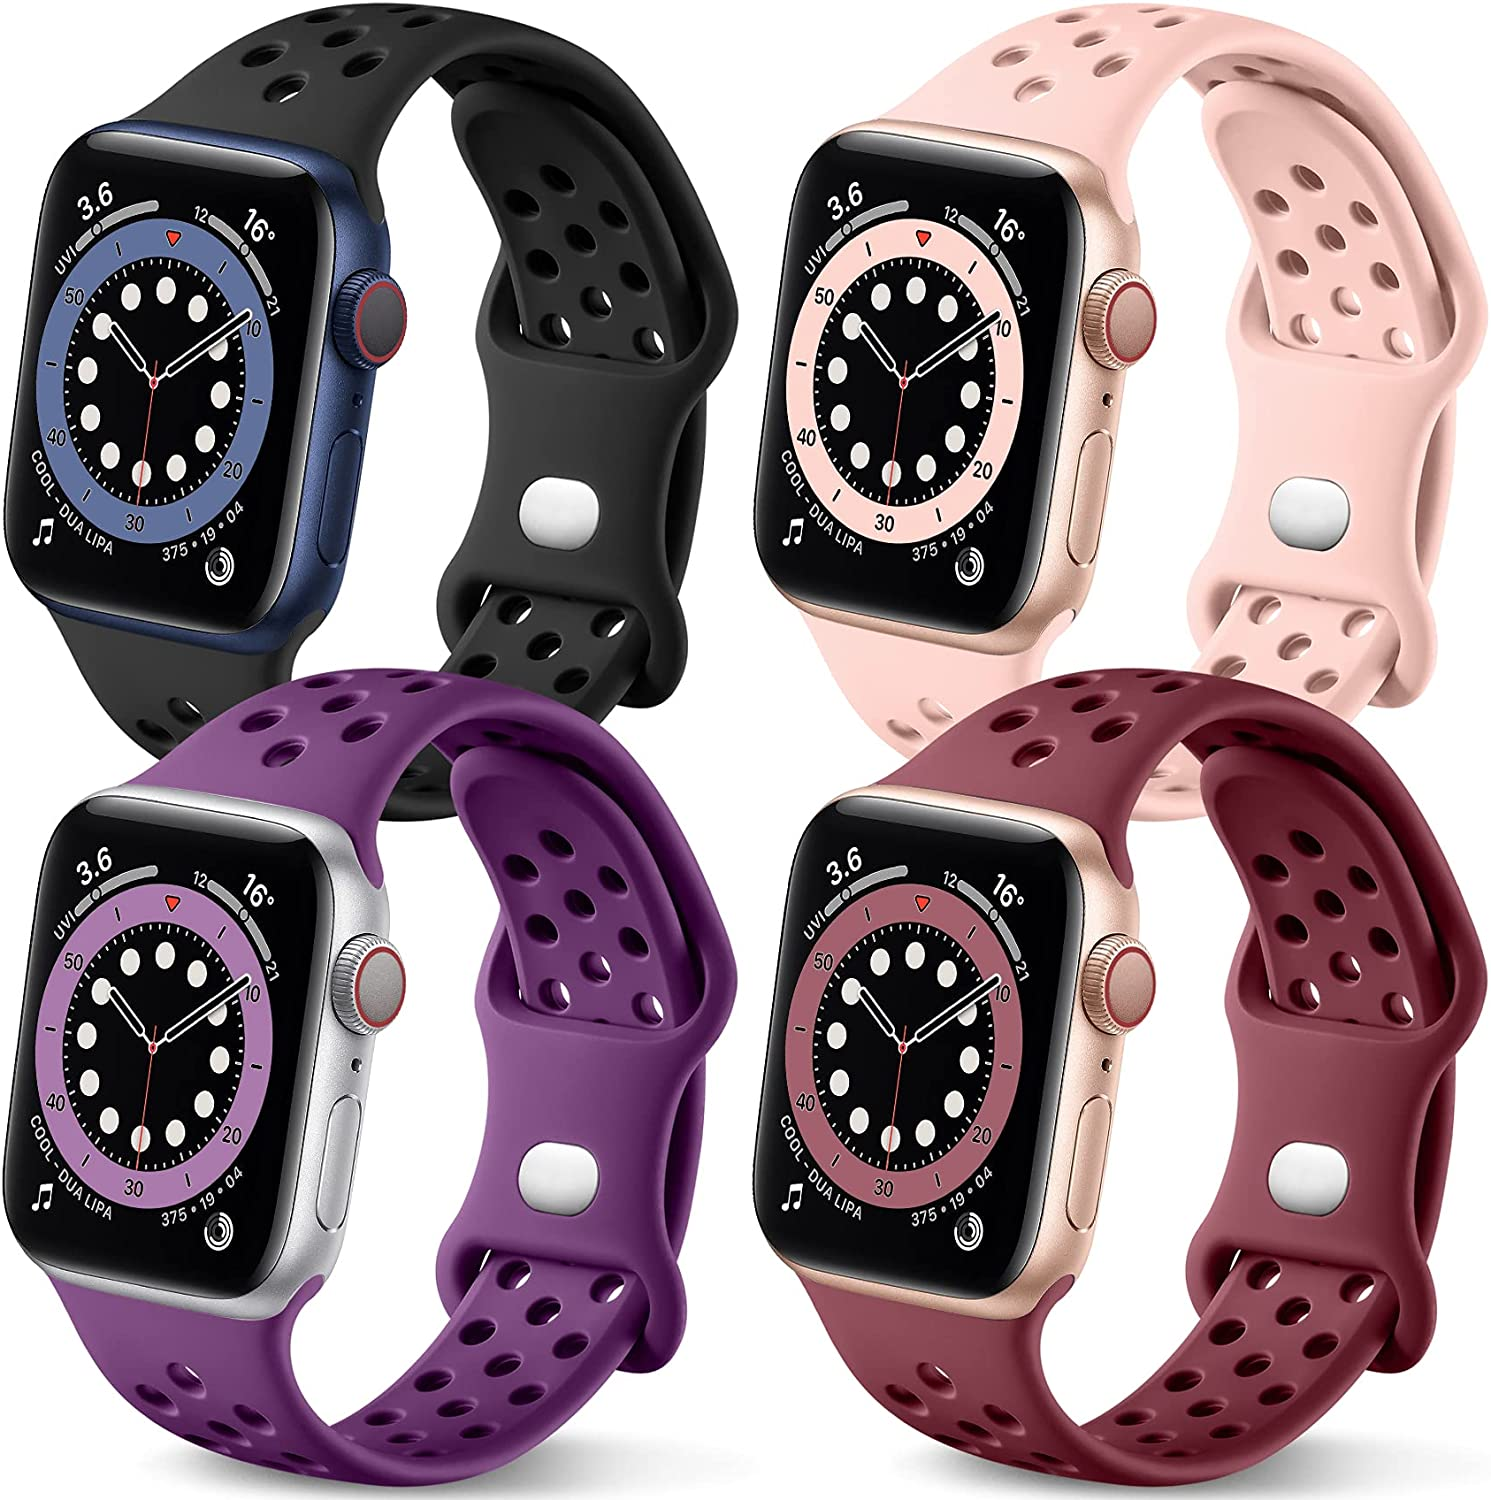 Getino Compatible with Apple Watch Band 40mm 38mm for Women Men iWatch SE & Series 6 5 4 3 2 1, Stylish Breathable Soft Silicone Sport Bands,4 Pack, Black/Pink/Purple/Wine Red